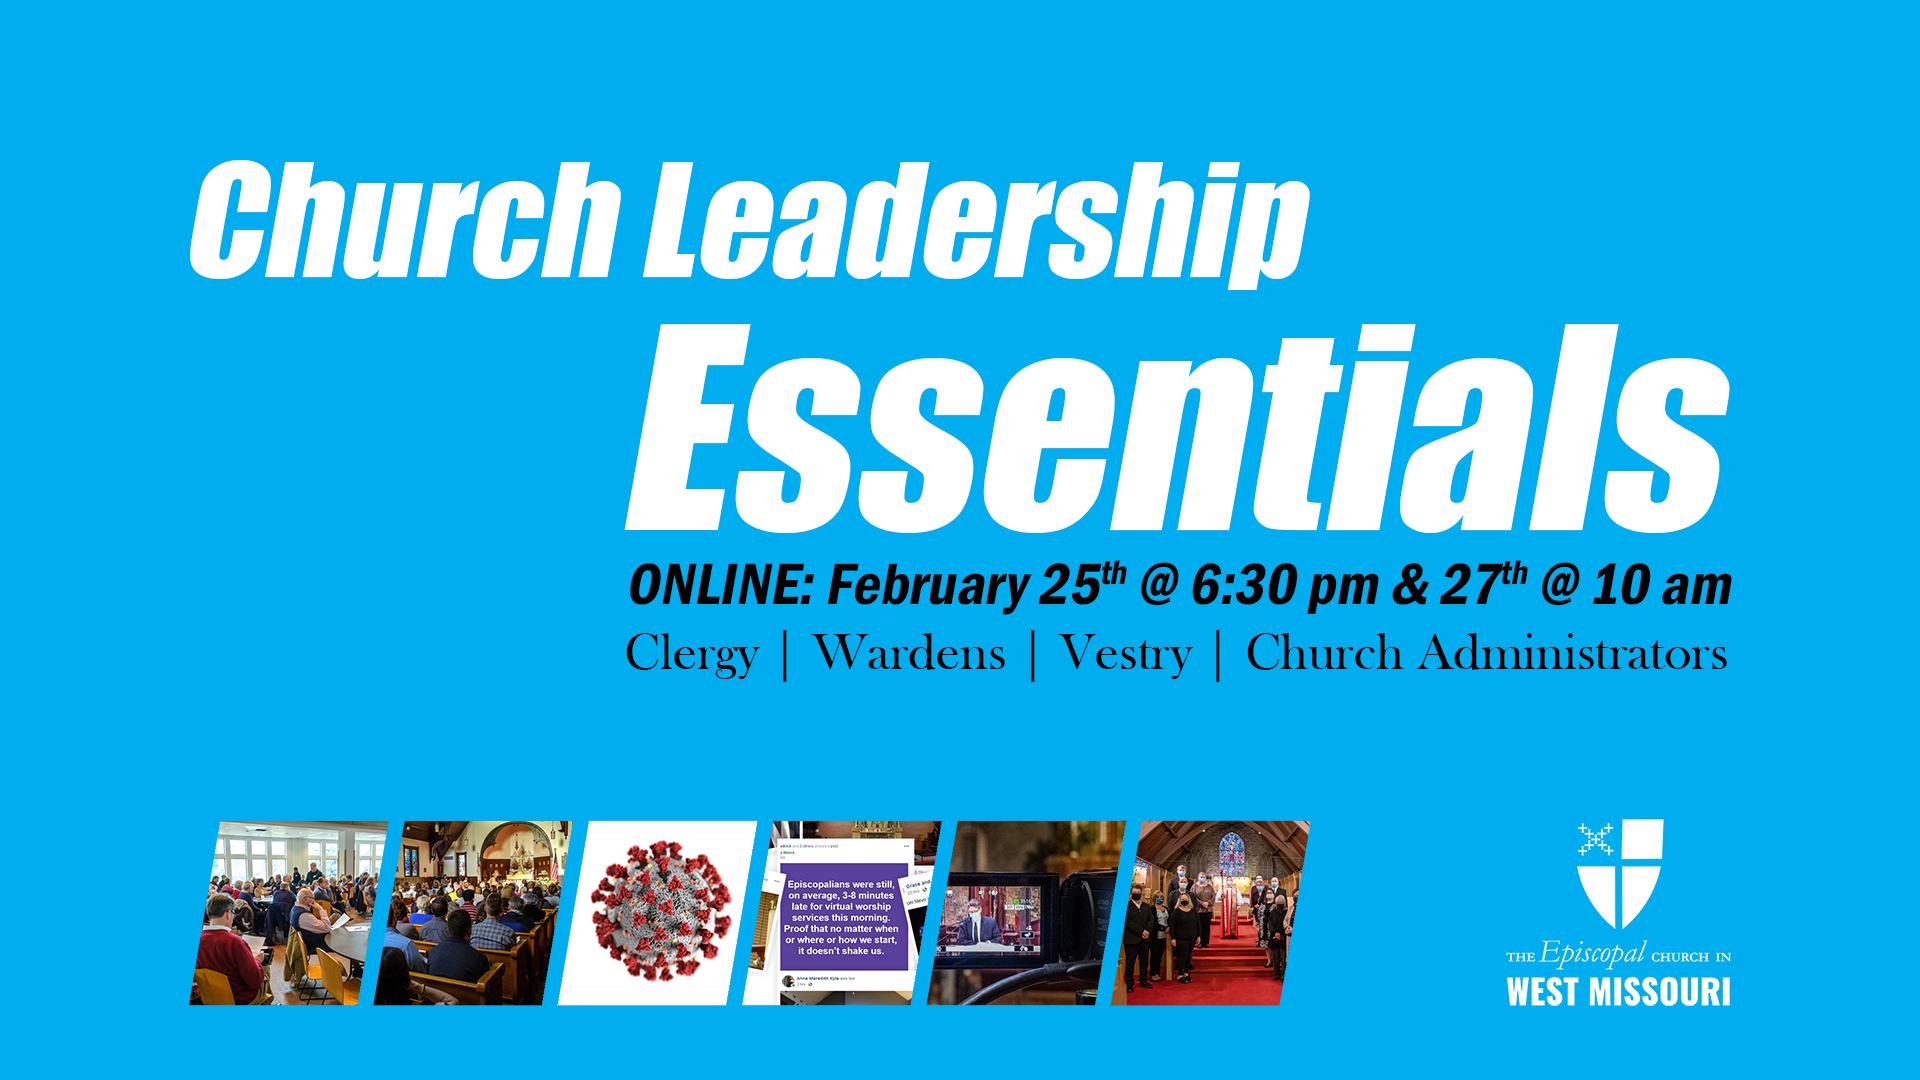 Church Leadership Essentials resources available online